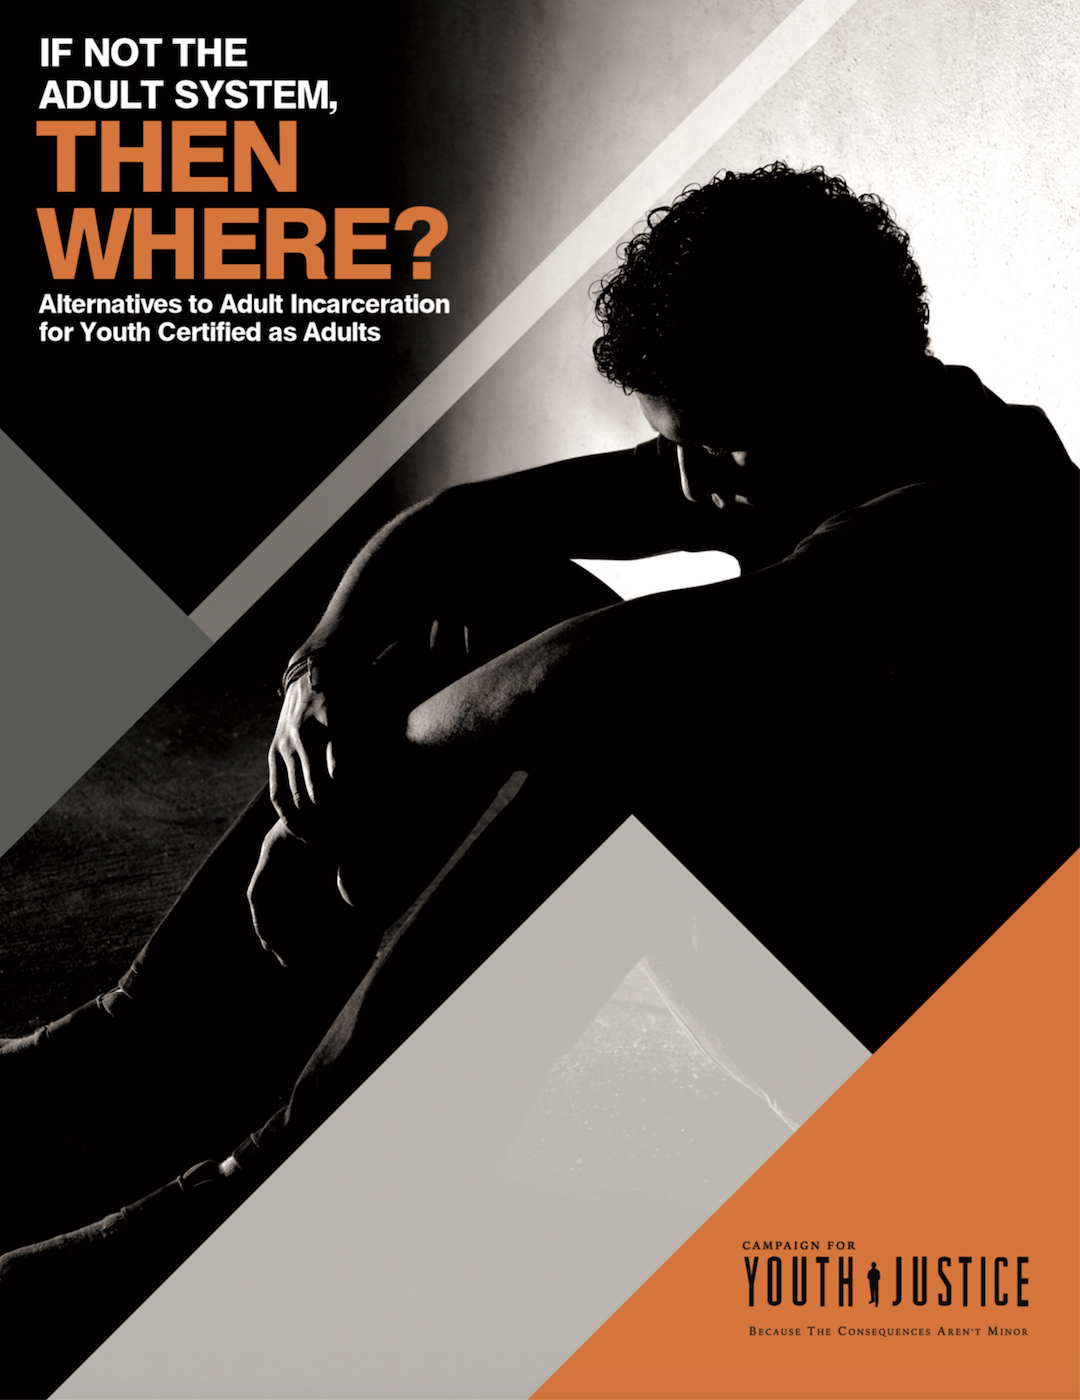 If Not The Adult System,Then Where? Alternatives to Adult Incarceration For Youth Certified Adults